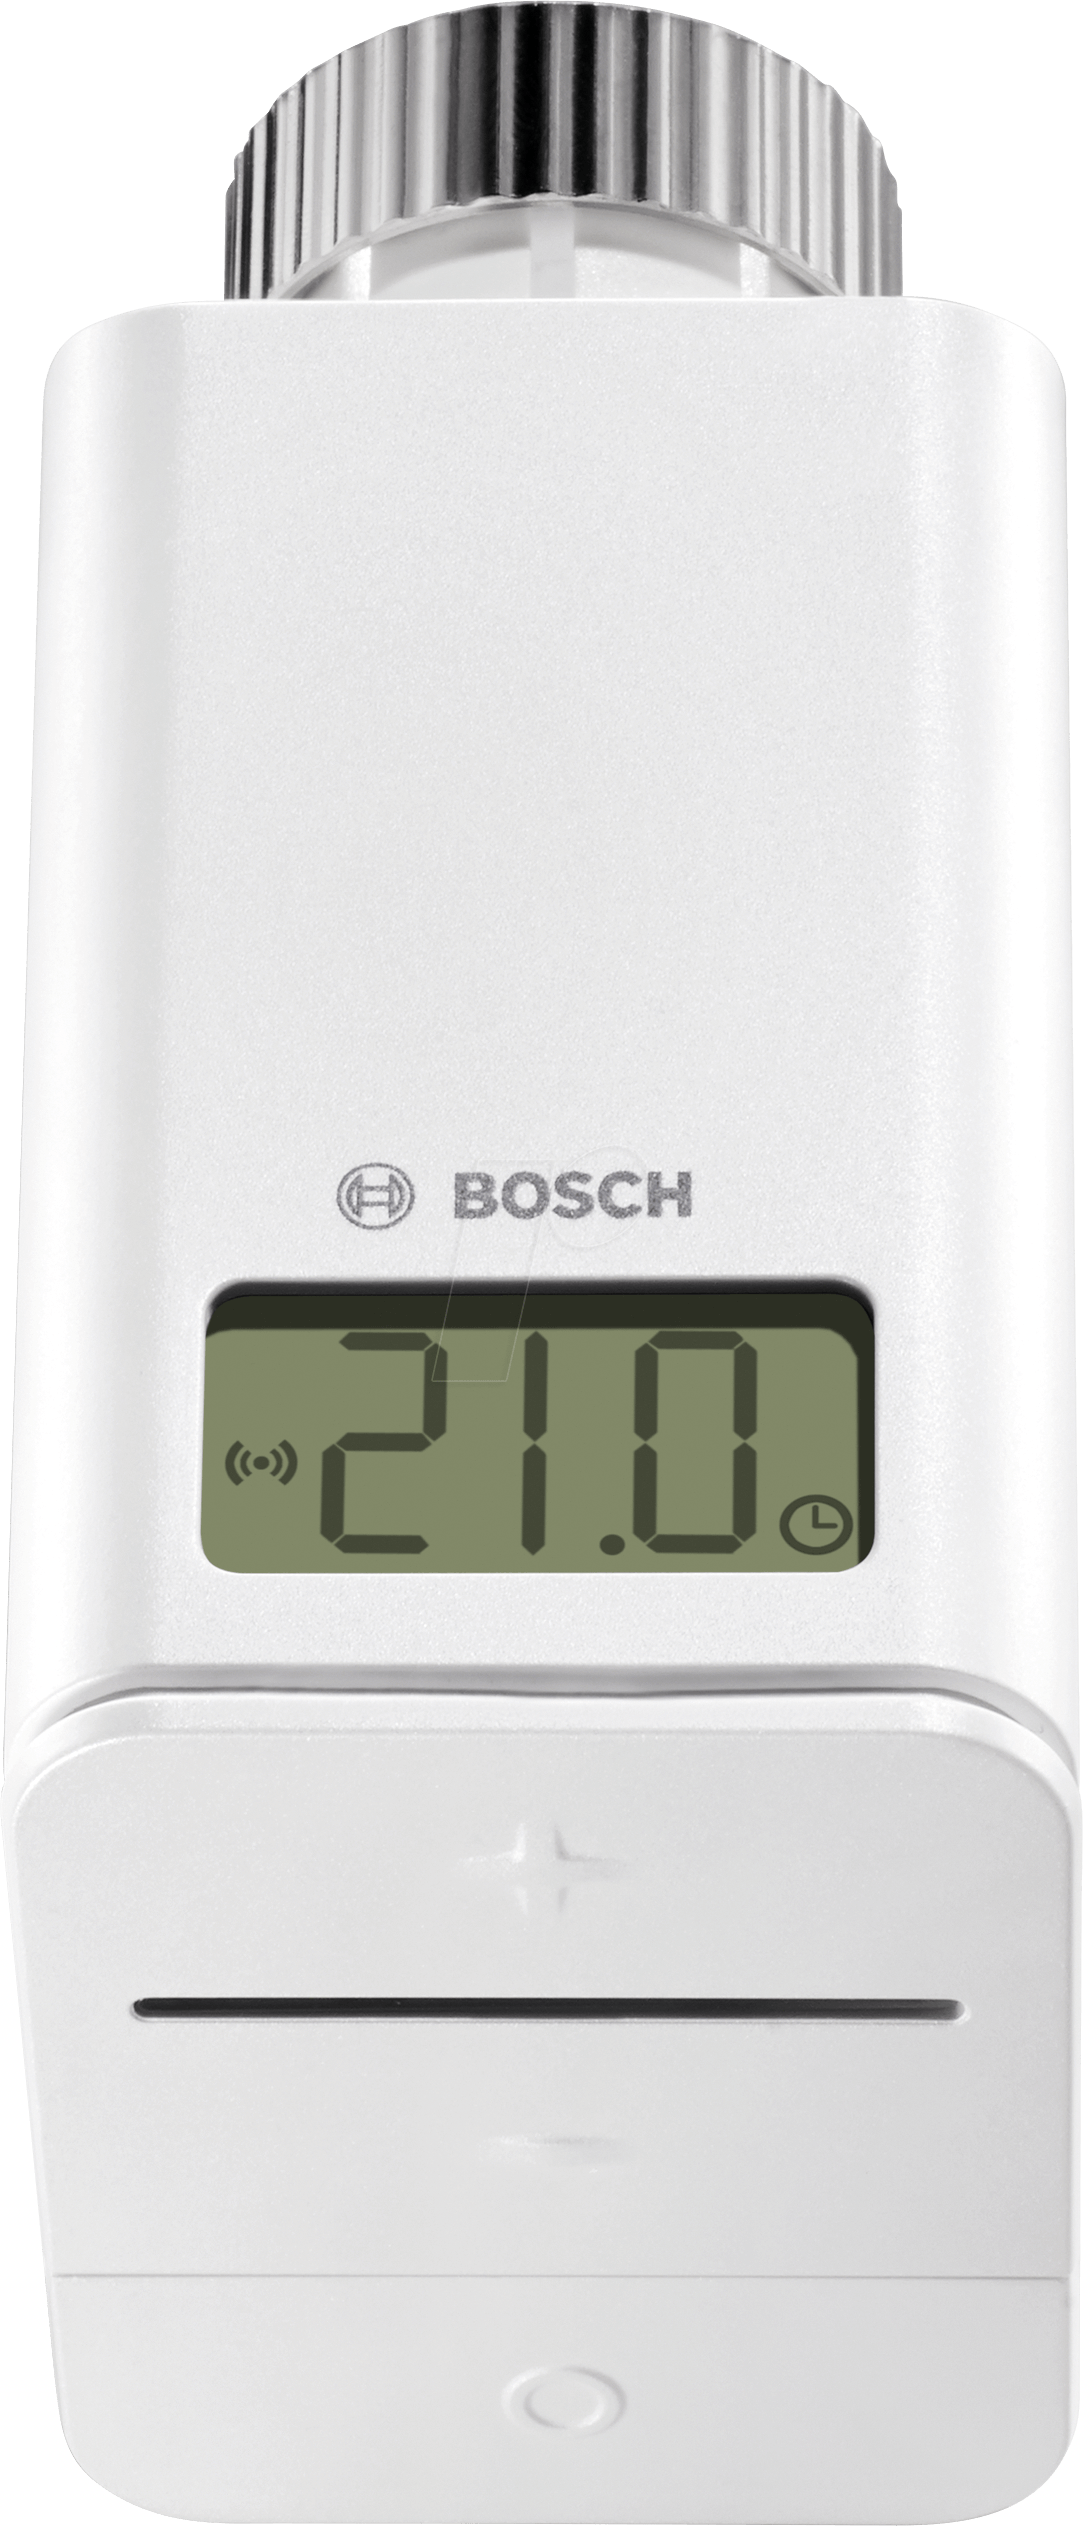 bosch 8752 heizk rper thermostat smart home bei reichelt. Black Bedroom Furniture Sets. Home Design Ideas